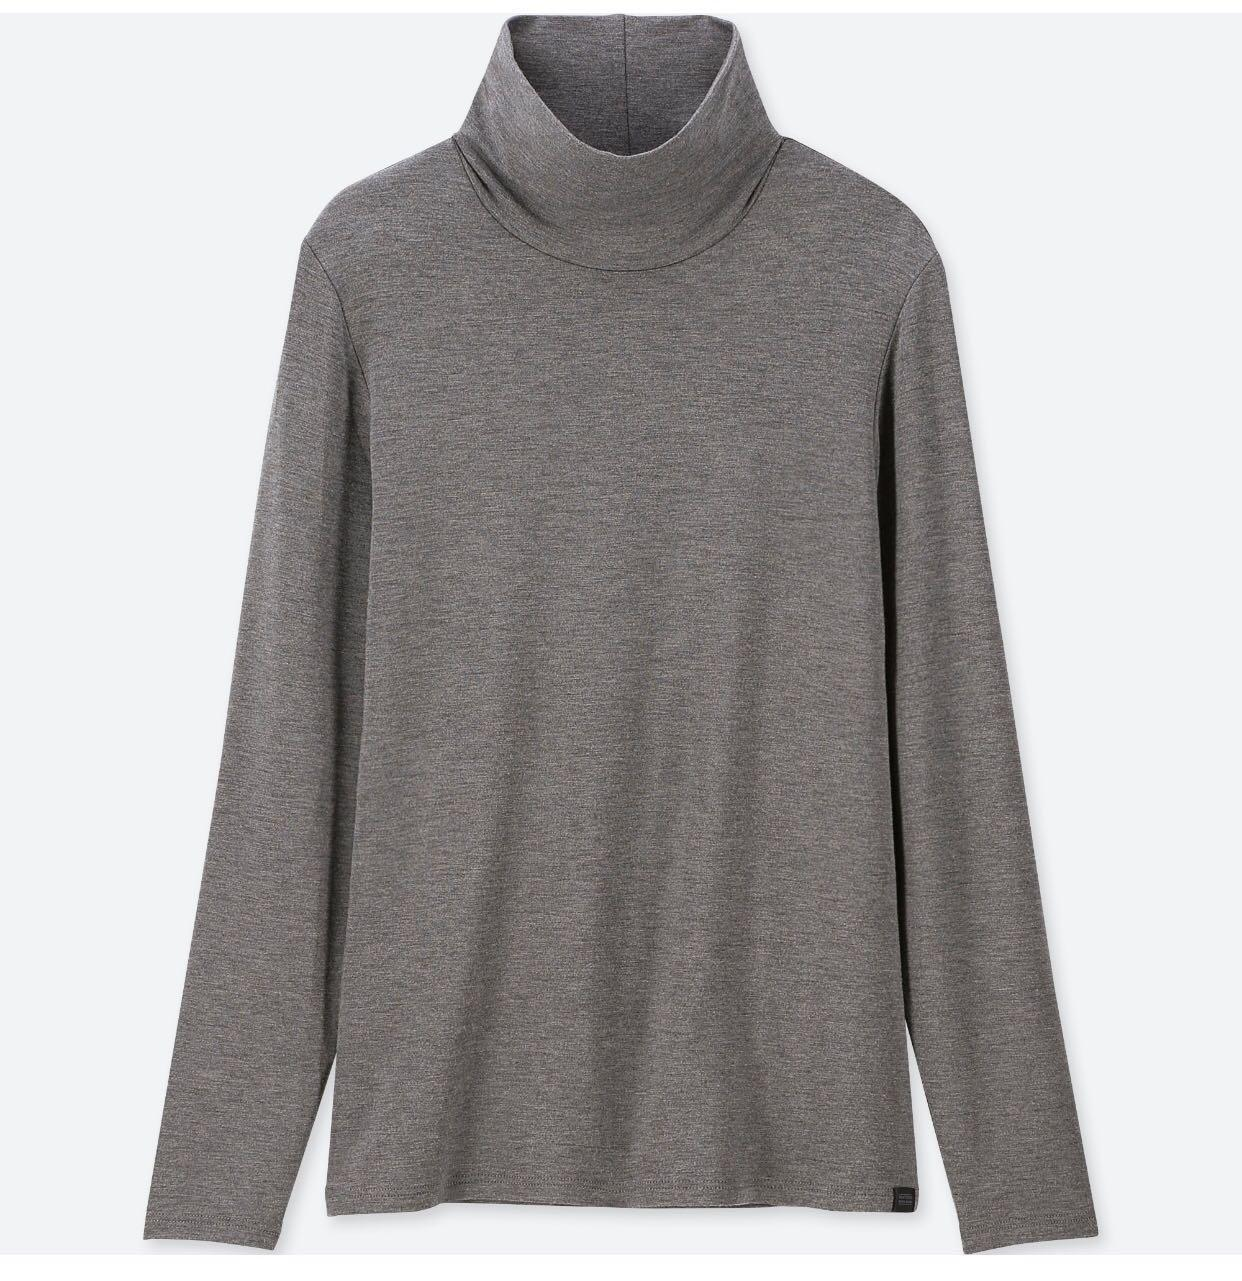 Uniqlo Heattech extra warm turtle neck T-shirt (small)